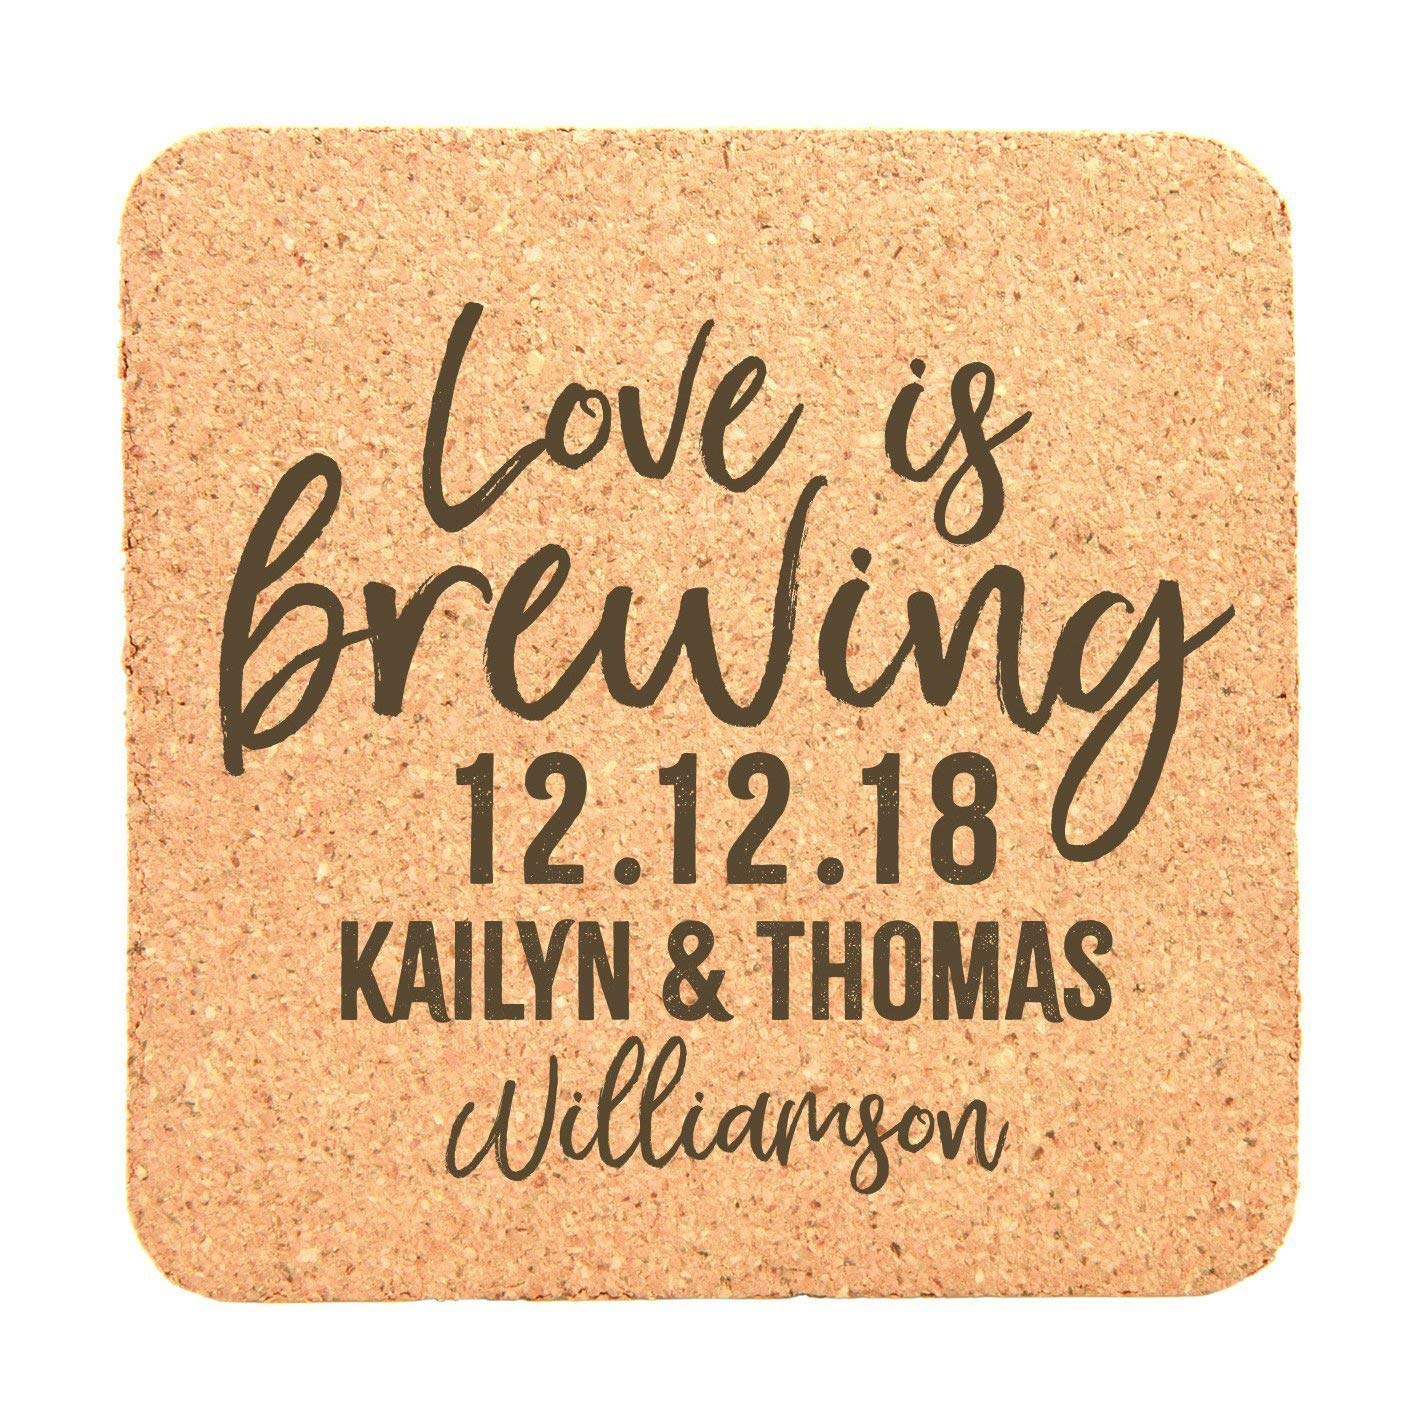 Personalized Wedding Cork Coasters With Date, Names, and Last Name Set of 25